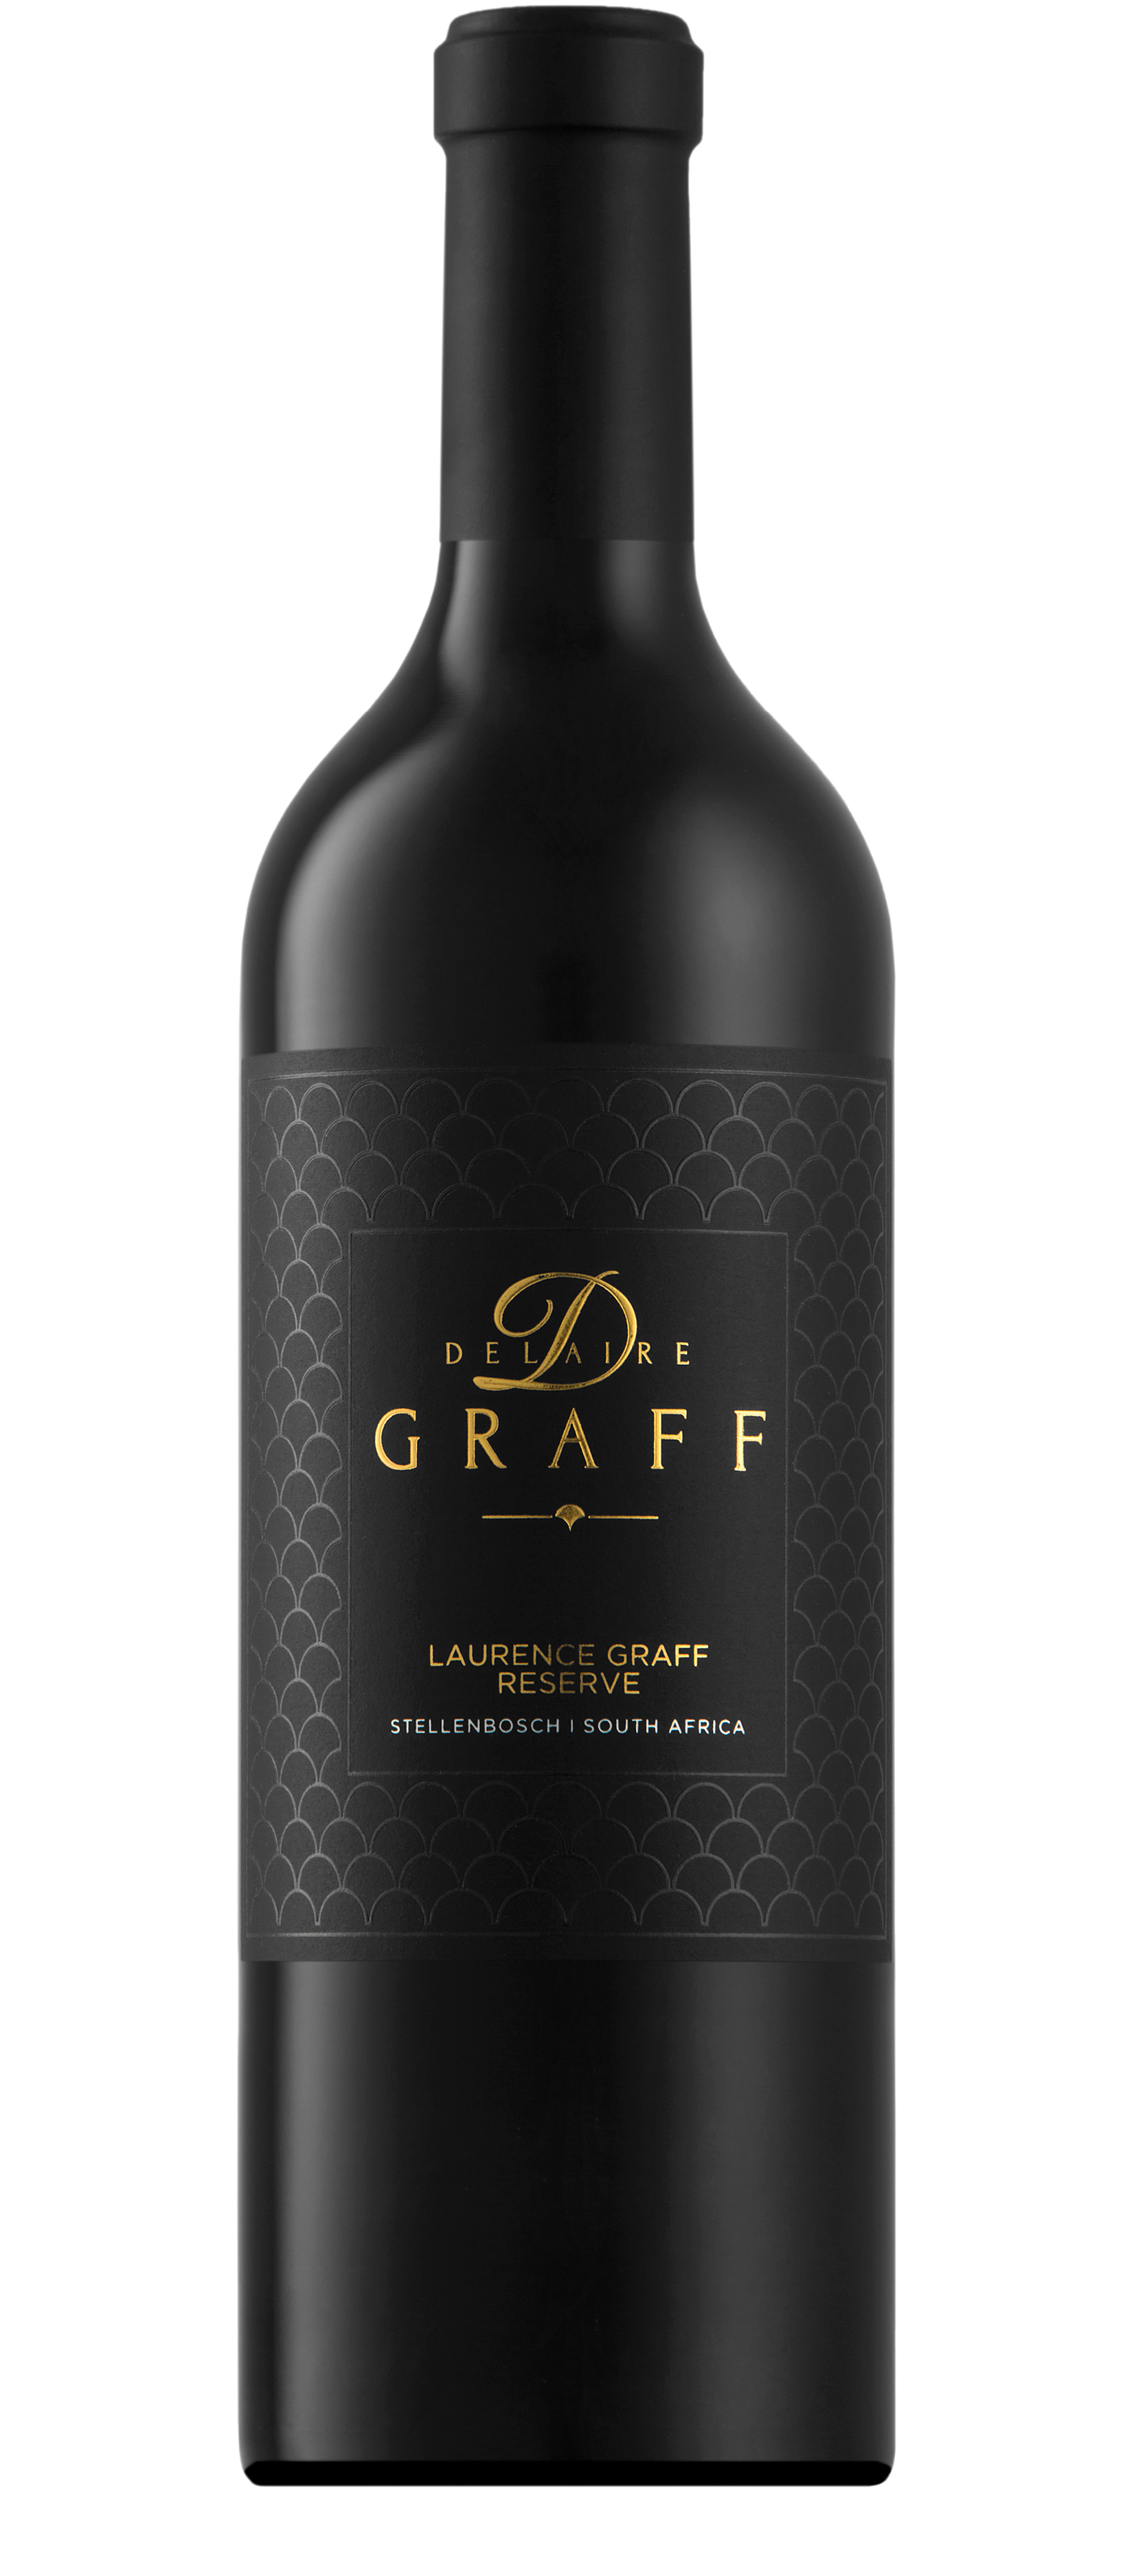 A bottle of Laurence Graff Reserve